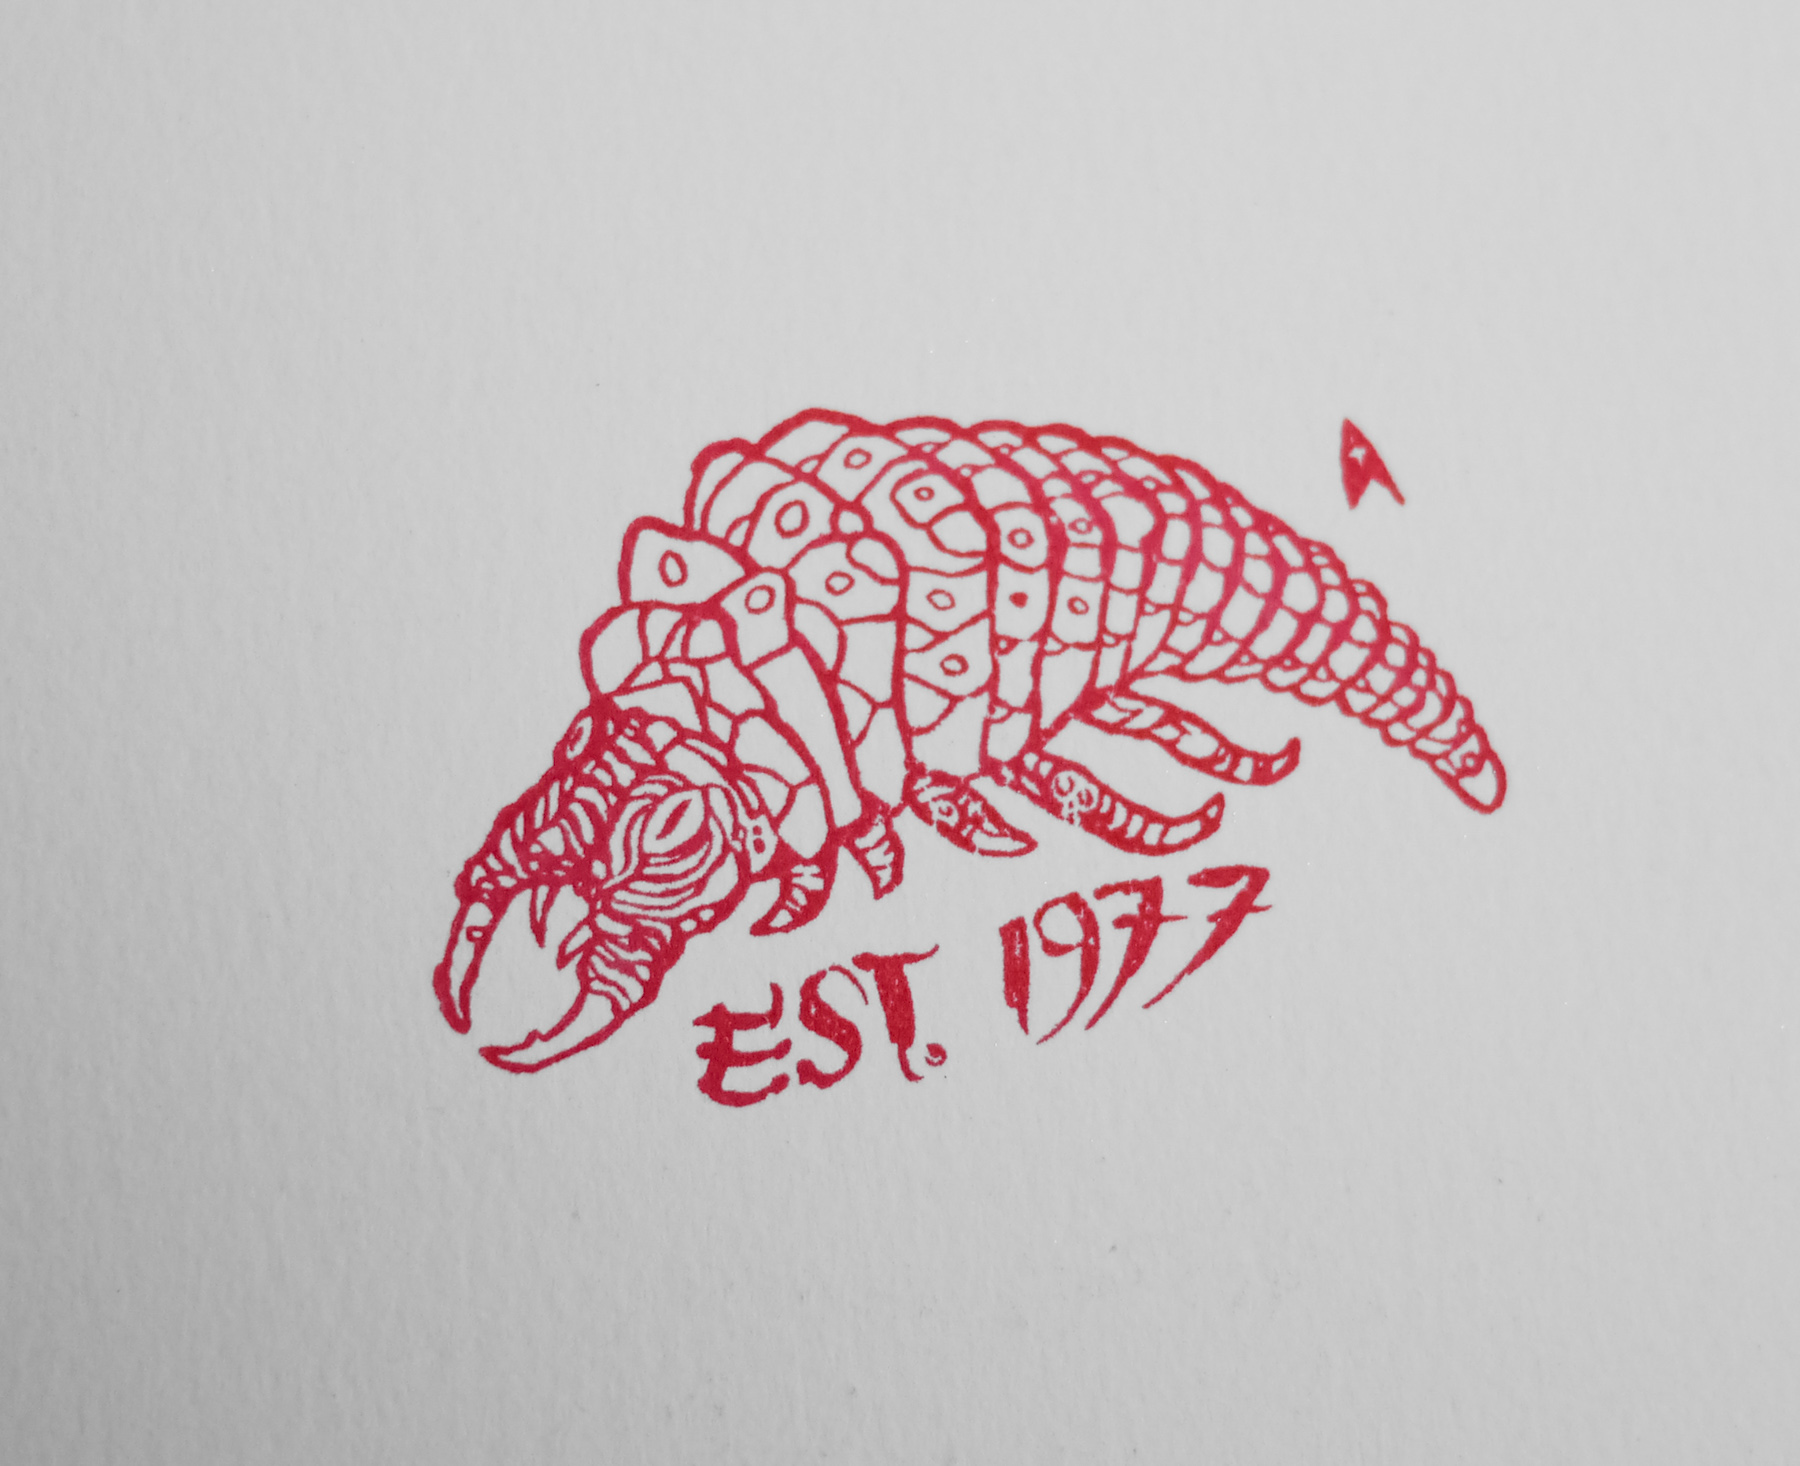 The stamp of the Ceti Eel as found on the back of the print itself.